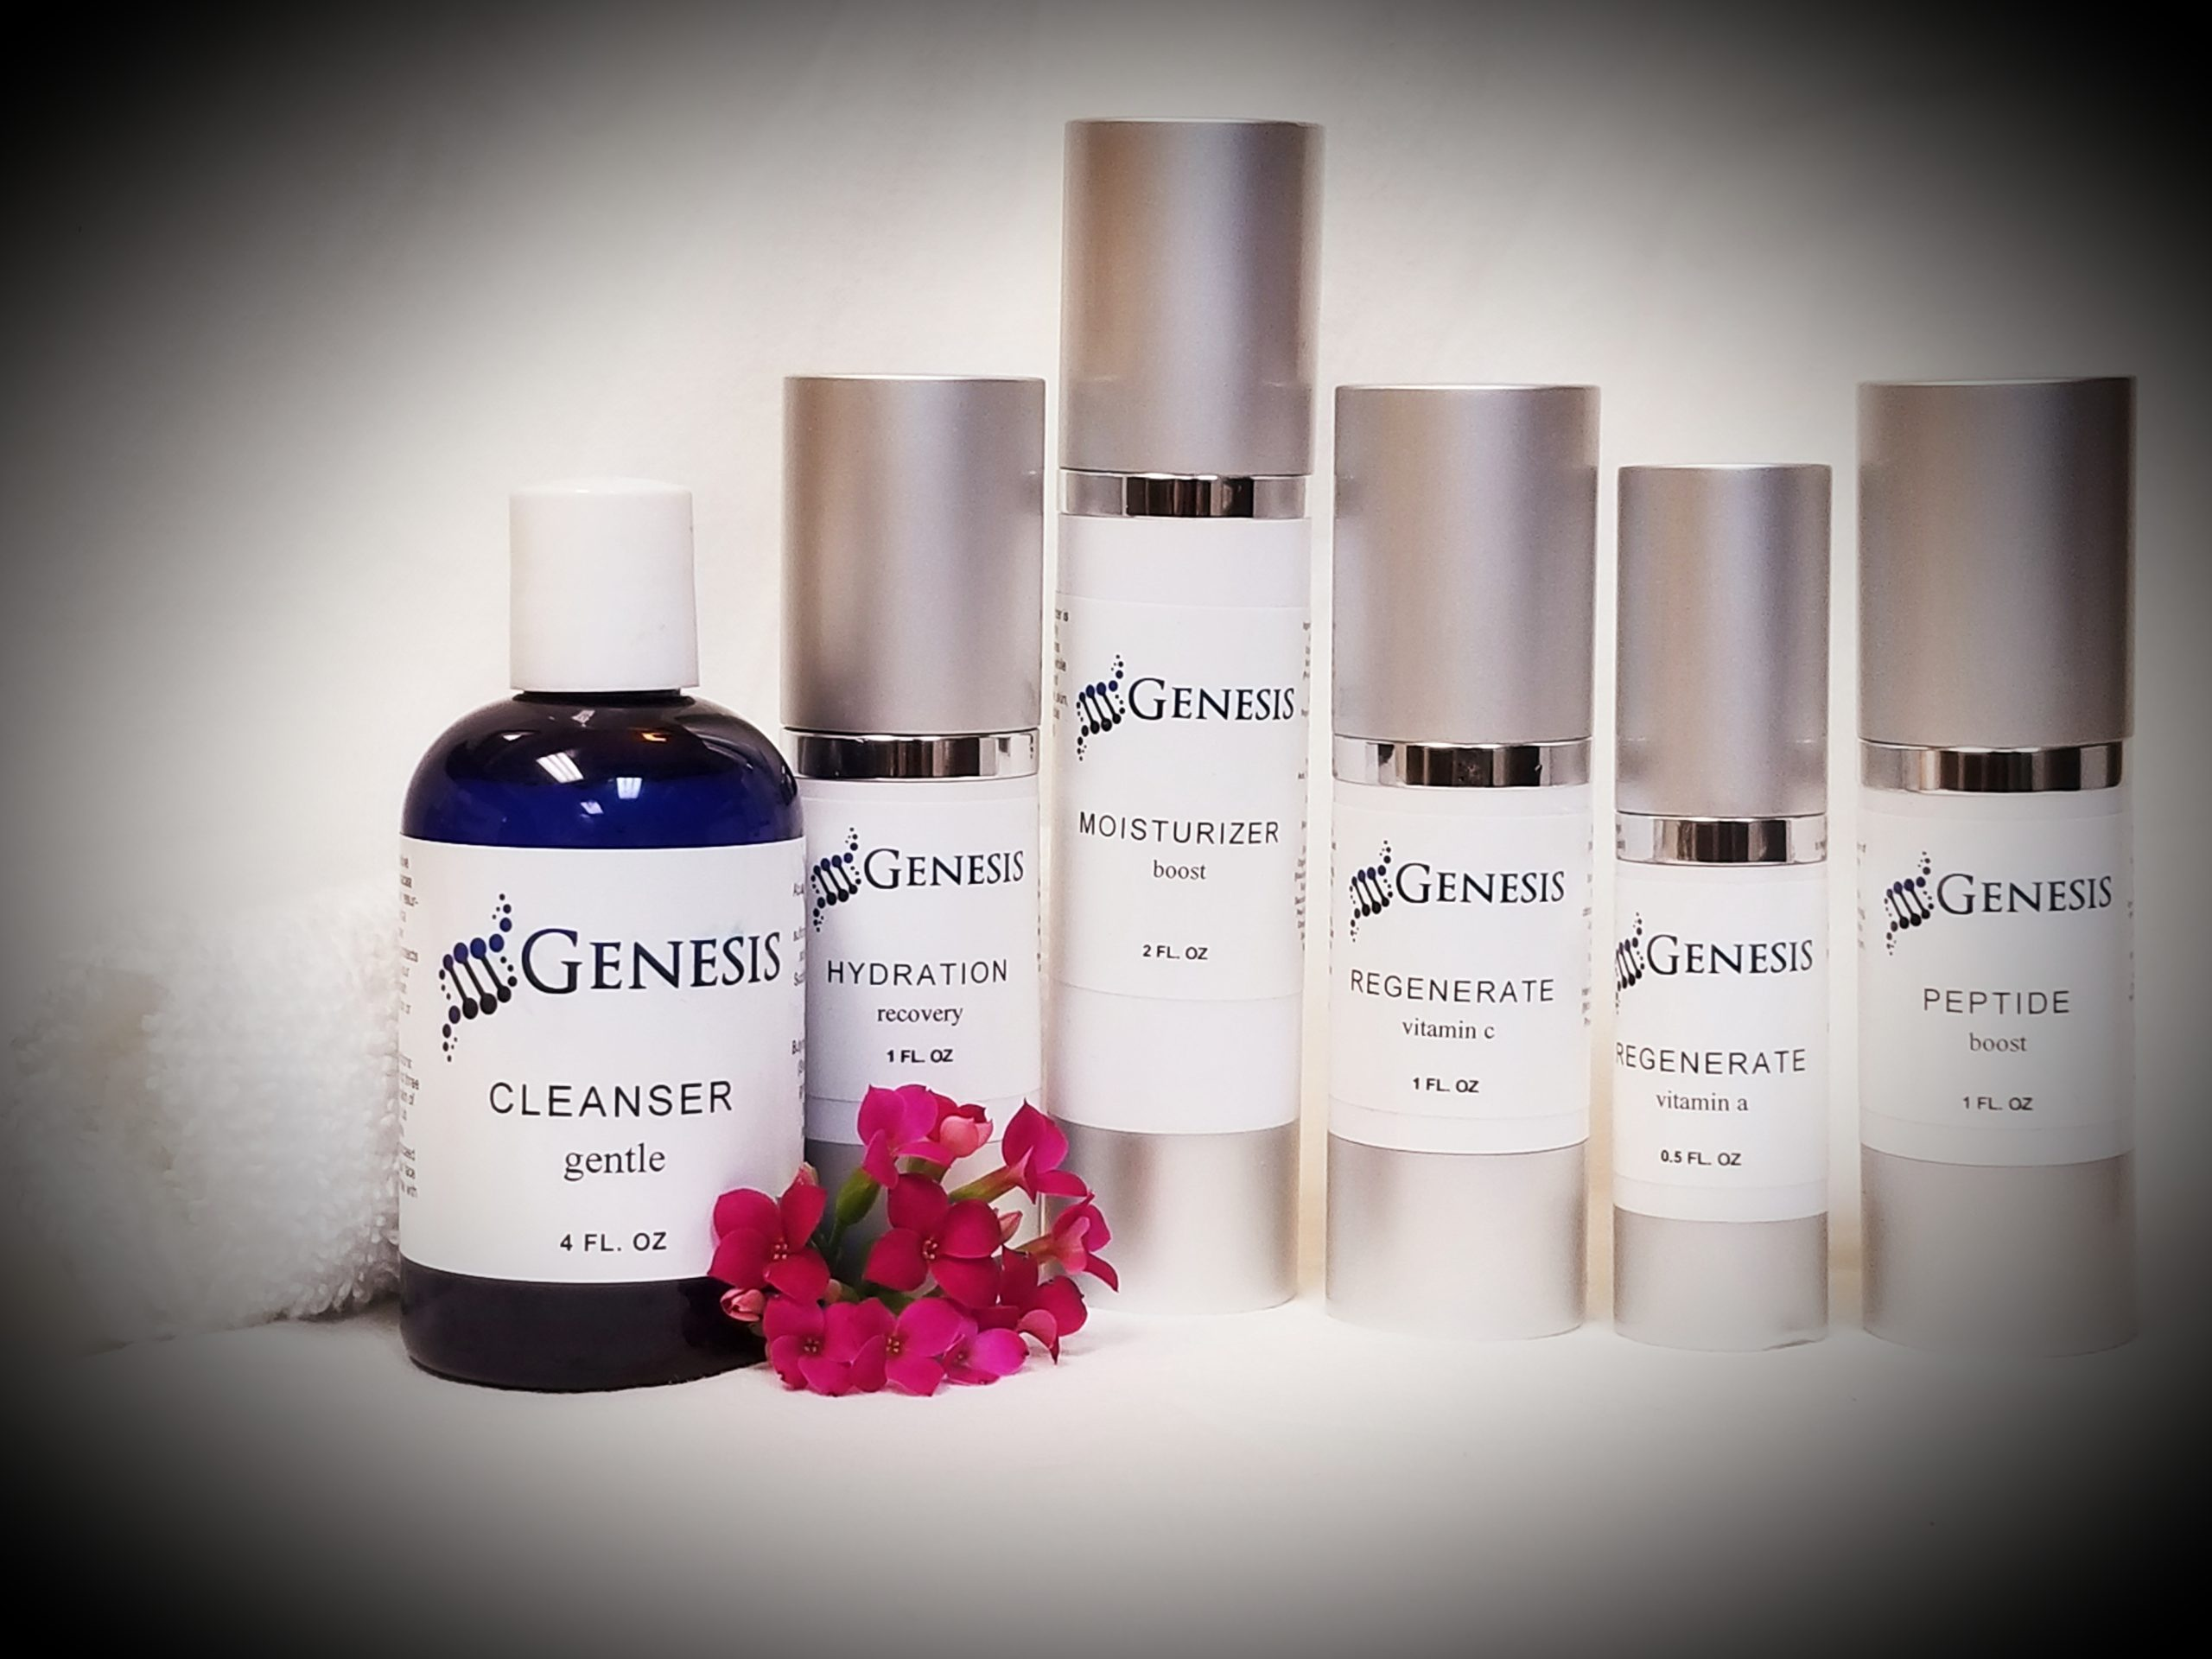 Our NEW and TOXIC FREE Nutrient Skin Care Line!